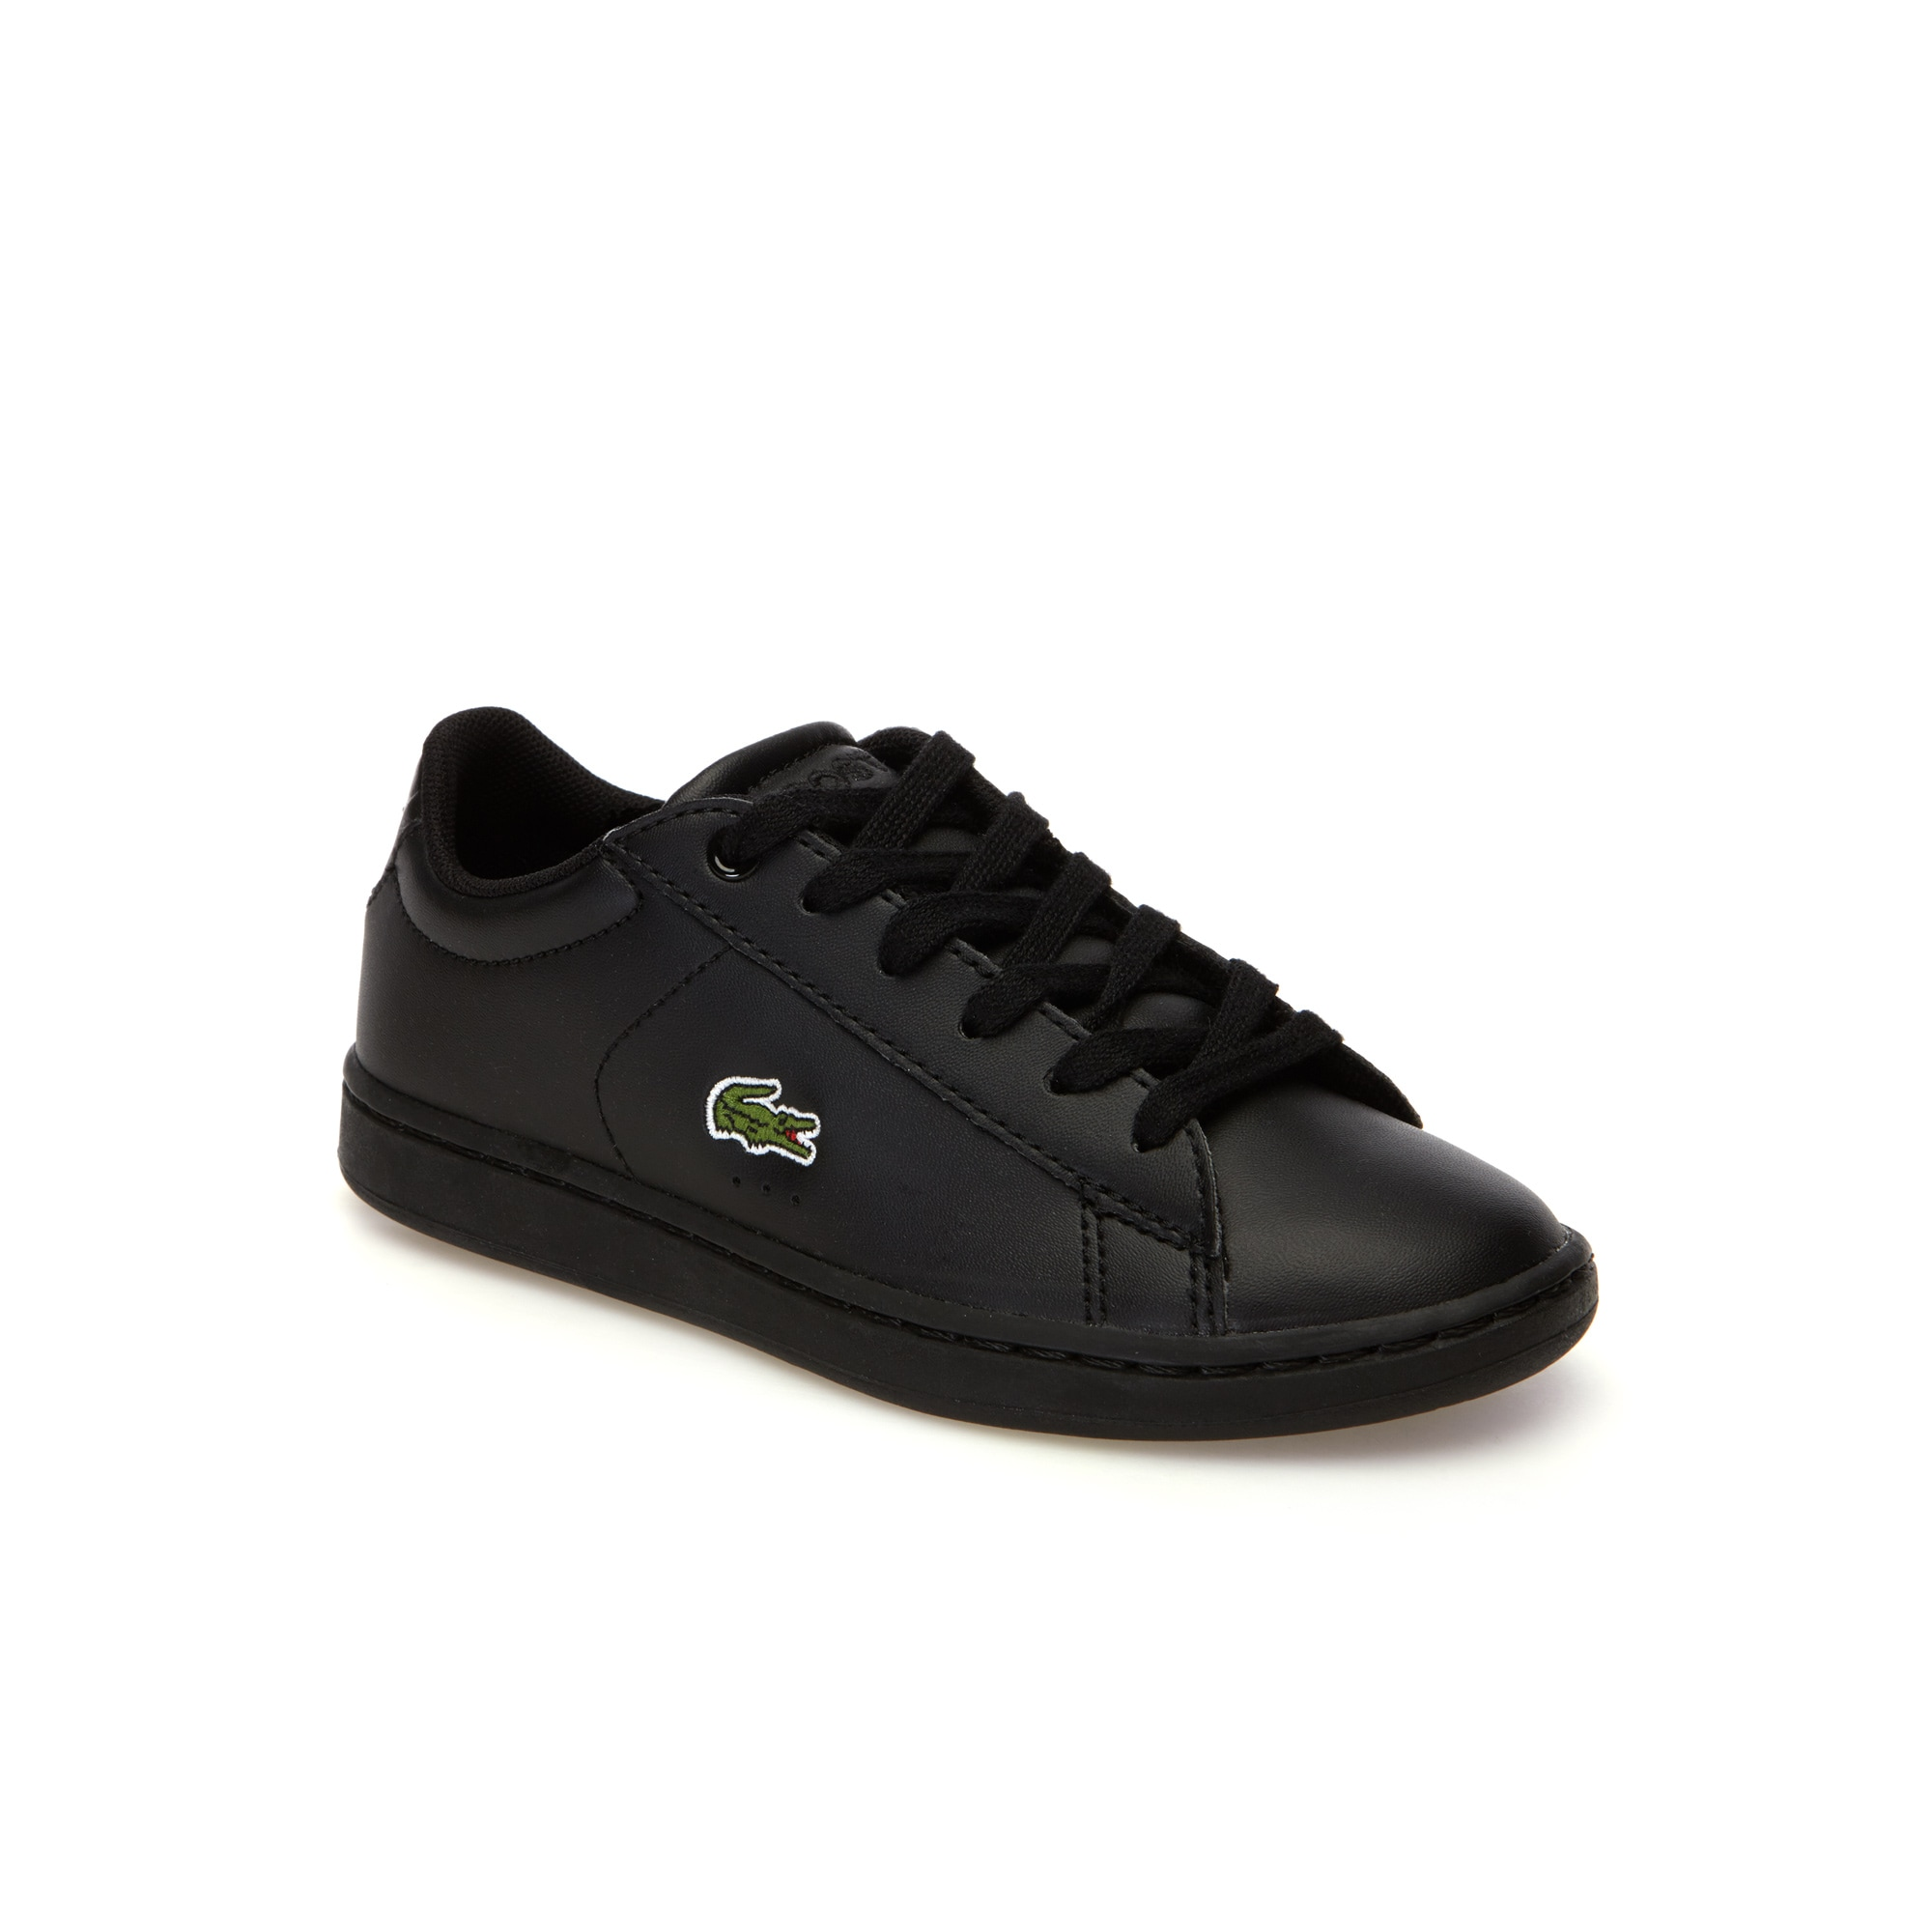 Sneakers Carnaby Evo da bambino in similpelle